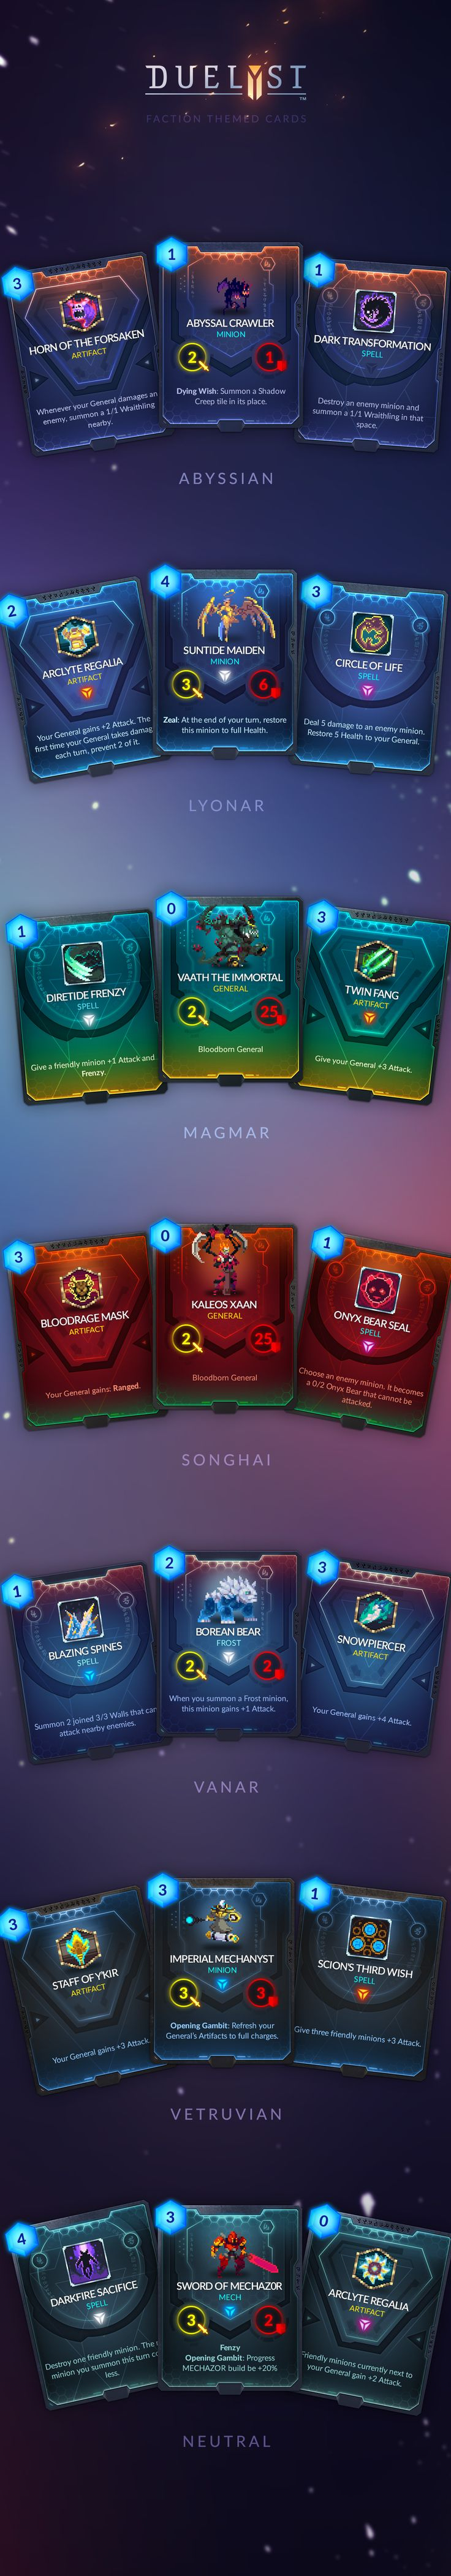 """Duelyst Cards"" by zerpixelung"